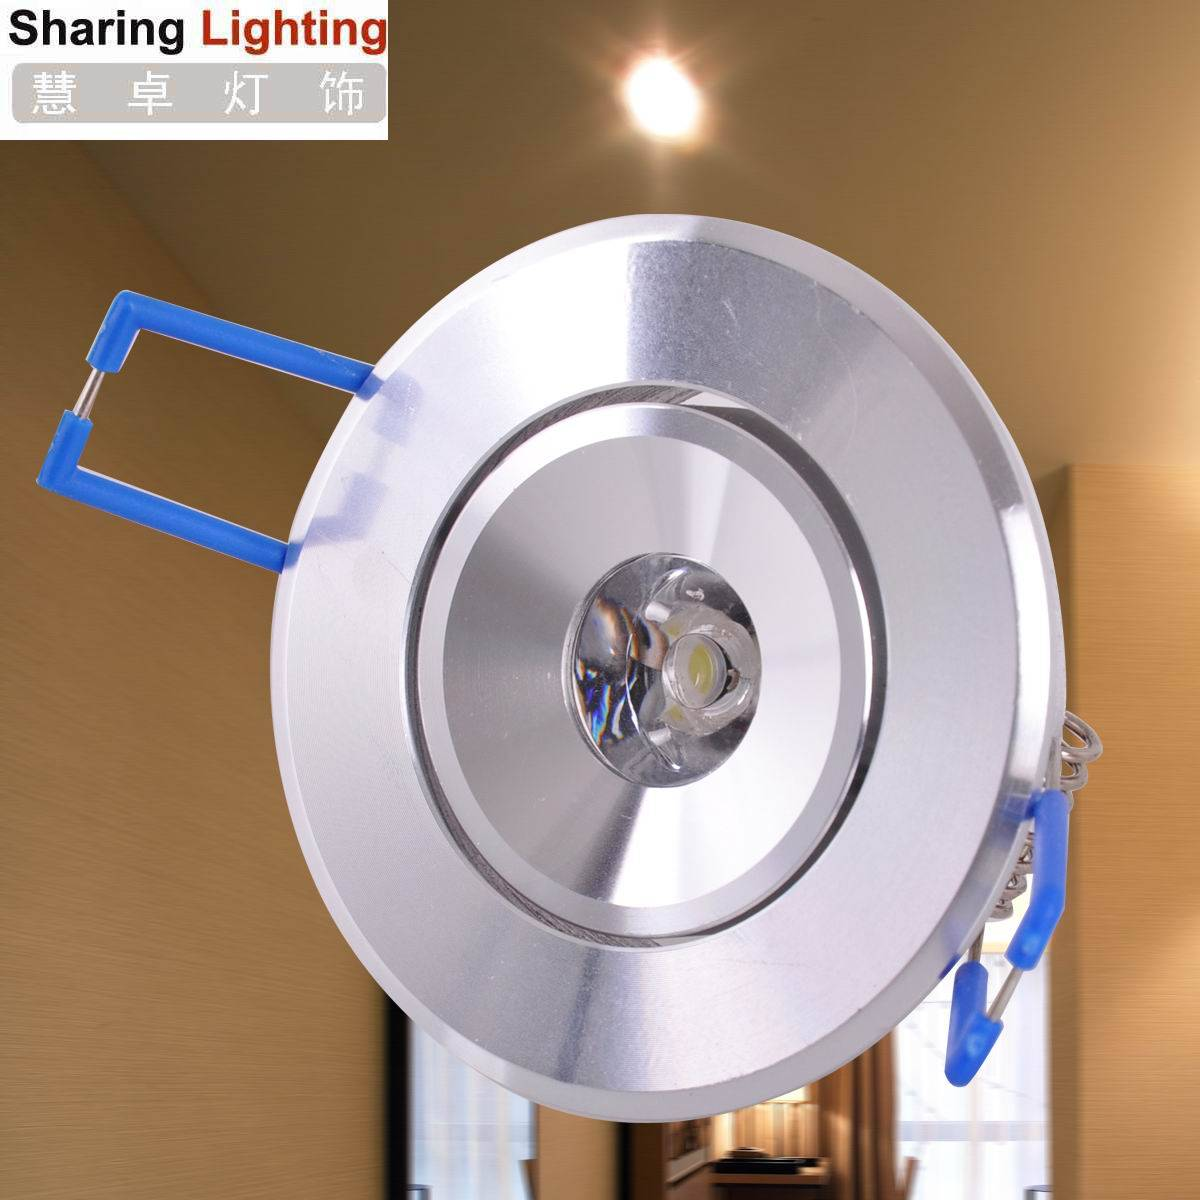 [Sharing Lighting]1W led down lamp,energy saving led lightings, led down light fixtures